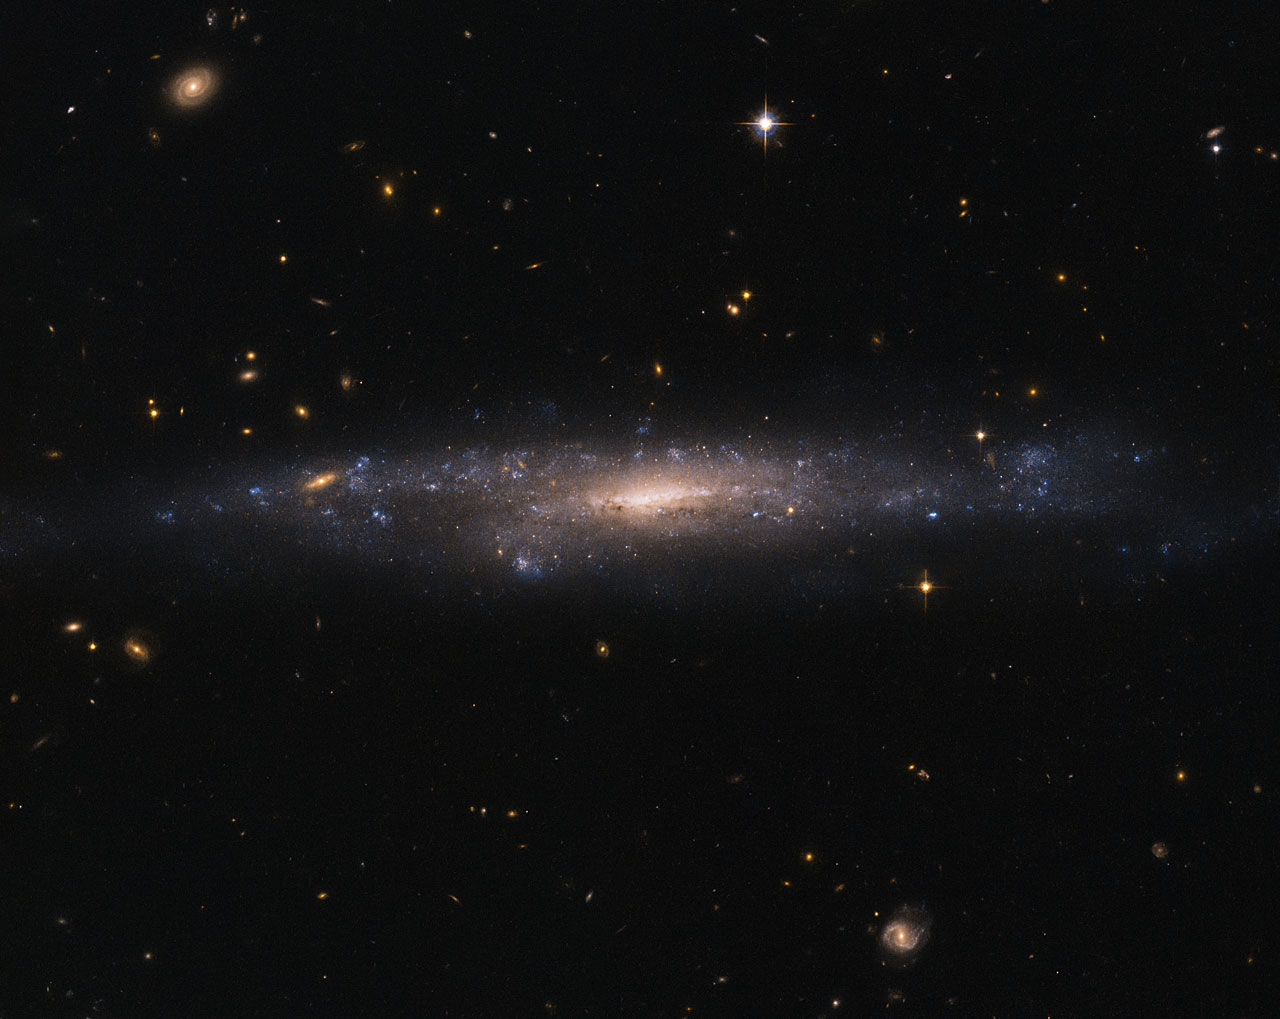 This striking NASA/ESA Hubble Space Telescope image captures the galaxy UGC 477, located just over 110 million light-years away in the constellation of Pisces (The Fish).